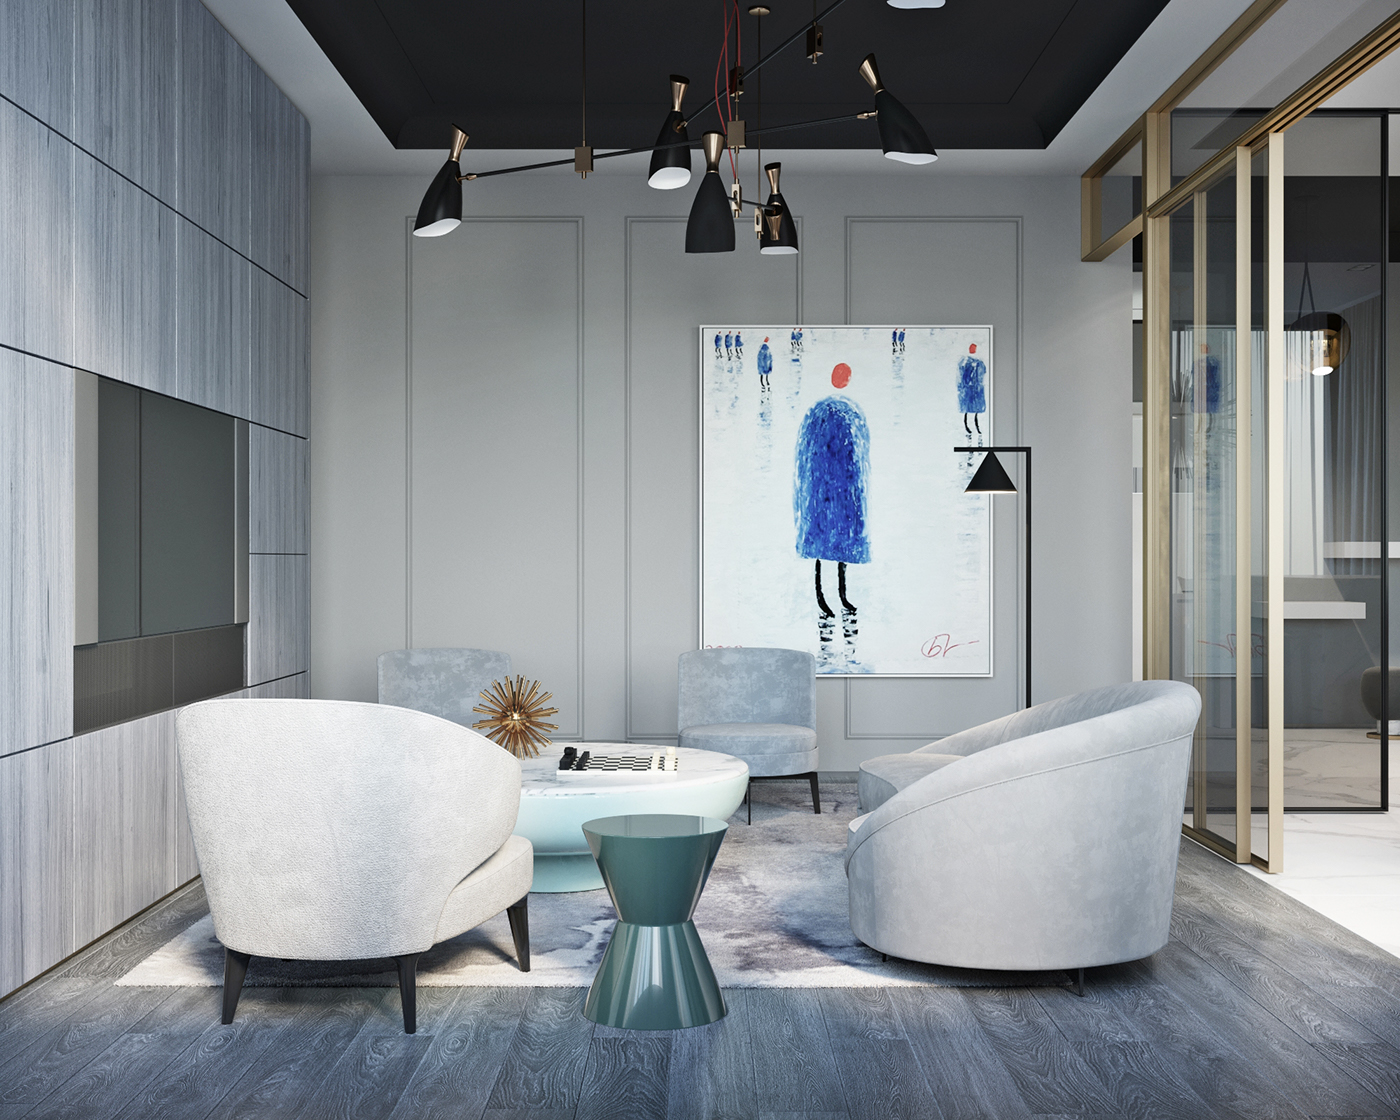 Shades Of Gray Modern Interior Design In Moscow! 1 shades of gray Shades Of Gray: Modern Interior Design In Moscow! Shades Of Gray Modern Interior Design In Moscow 1